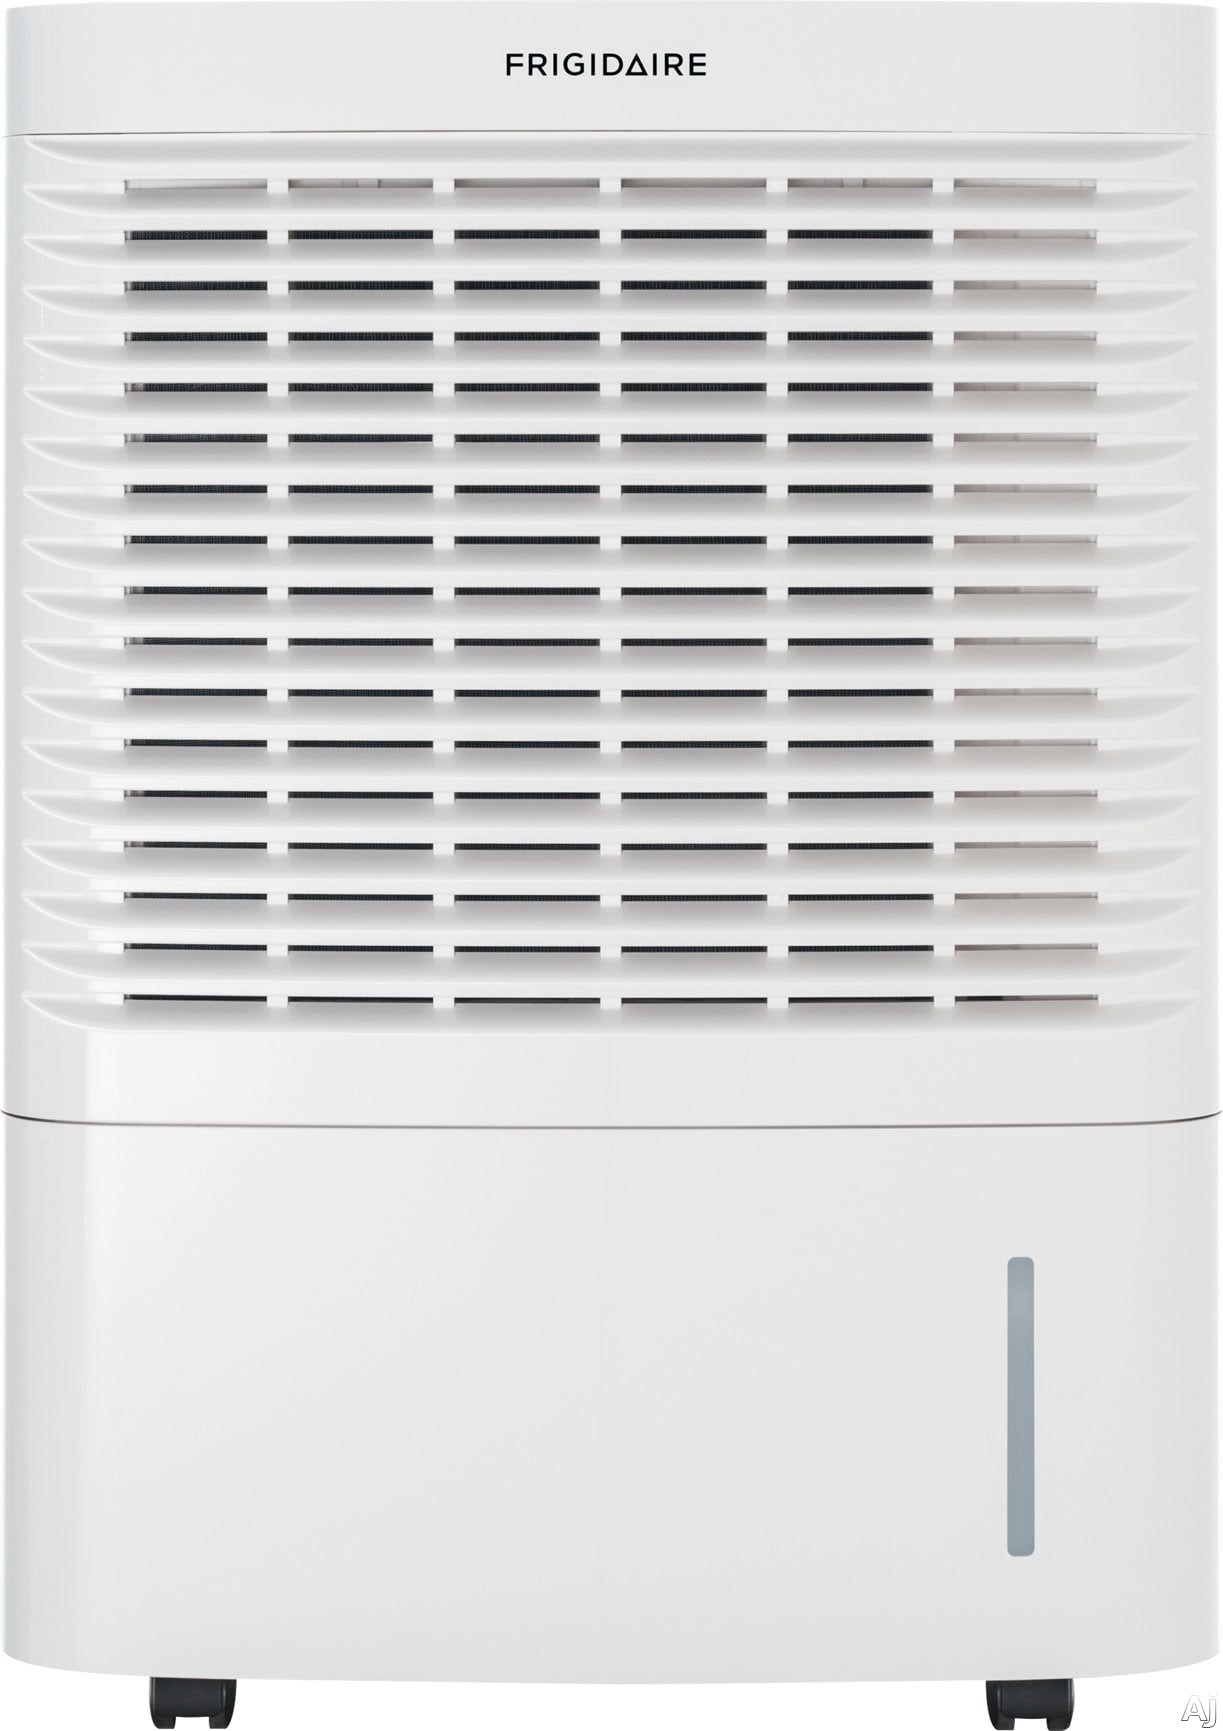 Frigidaire FAD954DWD 95 Pint Capacity Dehumidifier with Effortless™ Humidity Control, SpaceWise® Portable Design, Effortless™ Clean Filter, Ready-Select®, 3 Fan Speeds, Automatic Shut Off, Continuous Drain Option, Full Tank Alert System and Low Temperature Operation